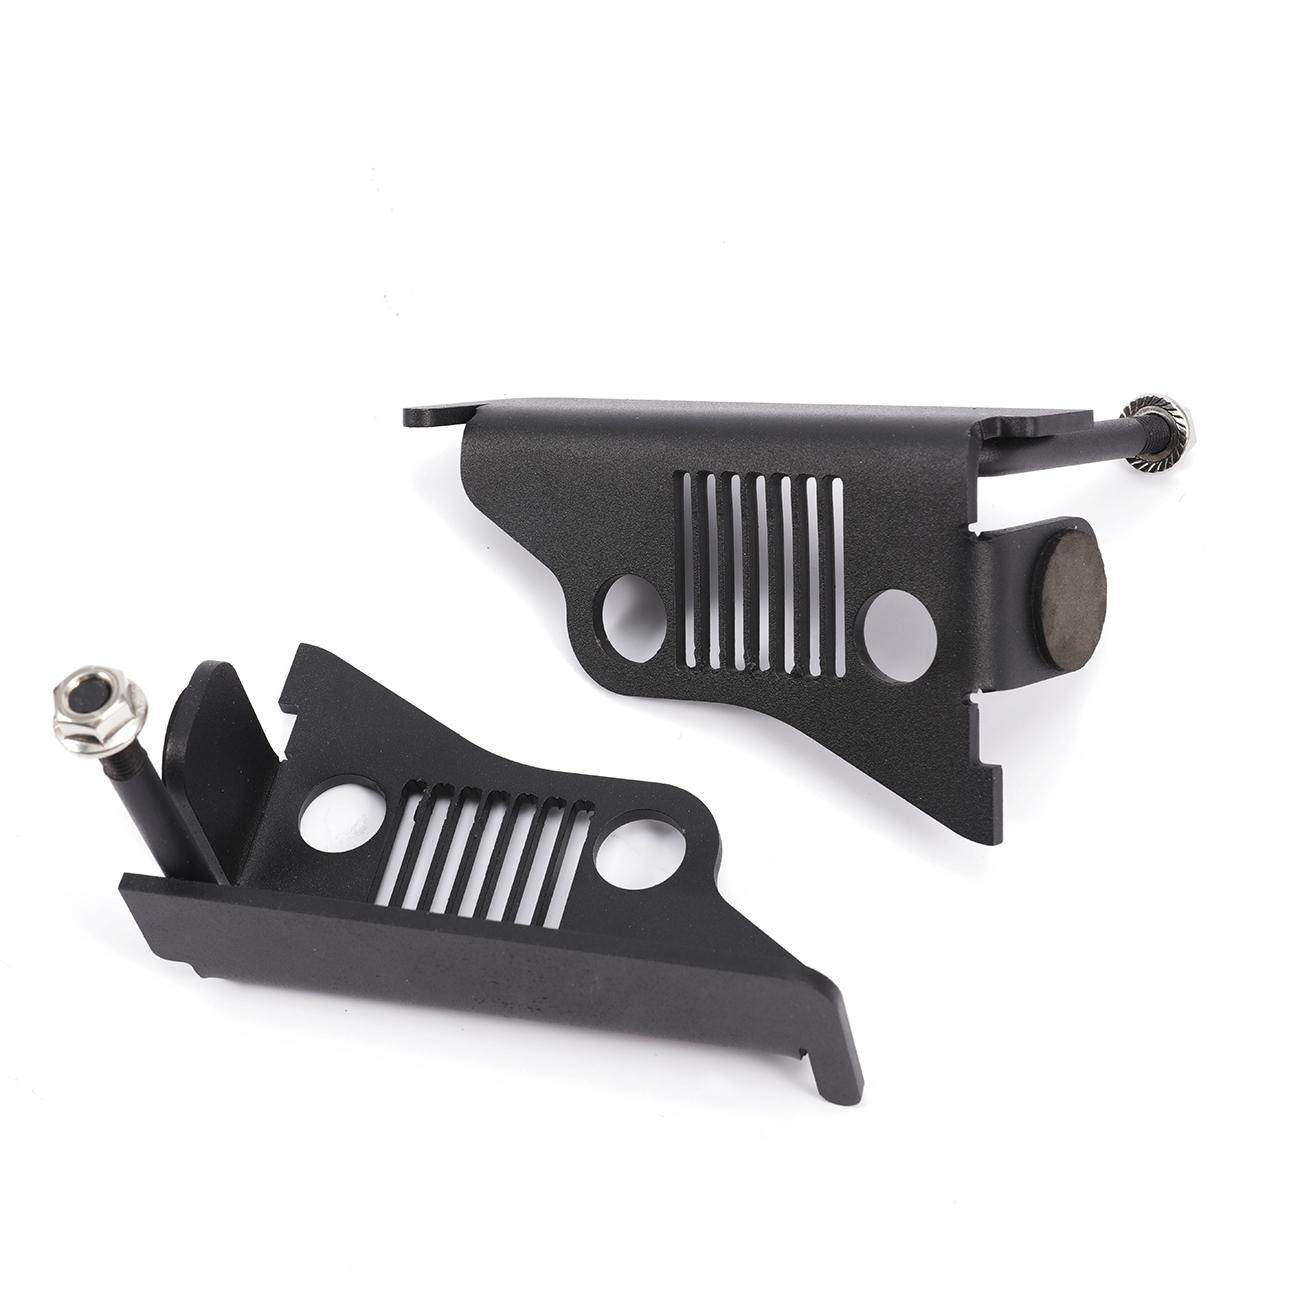 AUXMART Foot Pegs for 1997-2006 Jeep Wrangler TJ Black - Pair (Pack of 2) by AUXMART (Image #7)